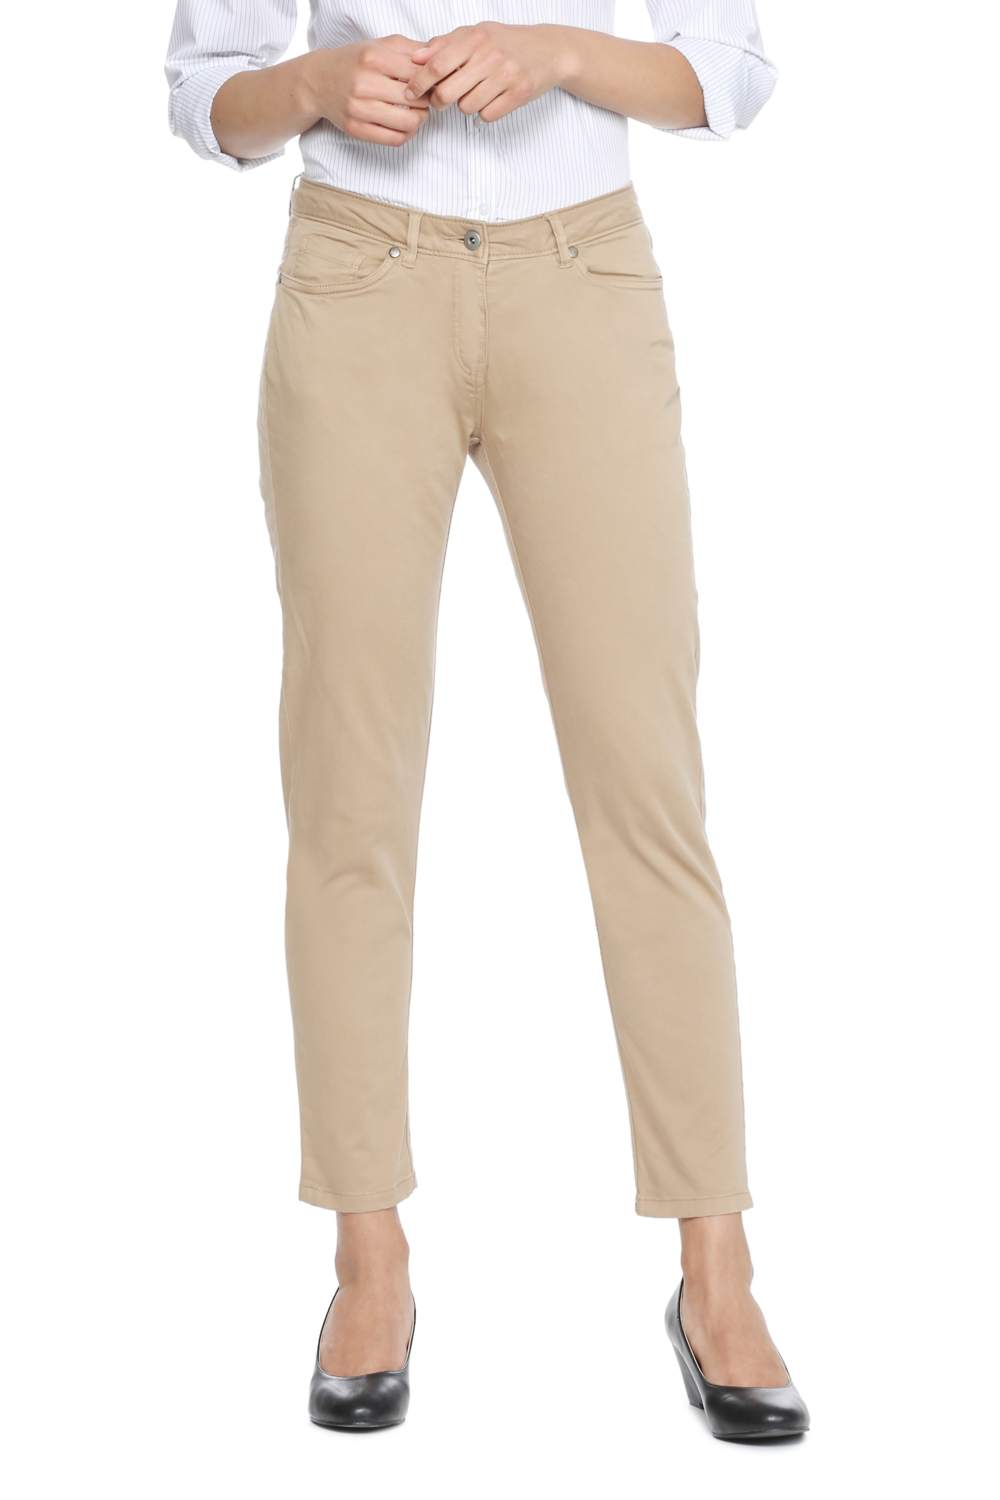 0eb862ccffe8f2 Solly Trousers & Leggings, Allen Solly Khaki Trousers for Women at  Allensolly.com